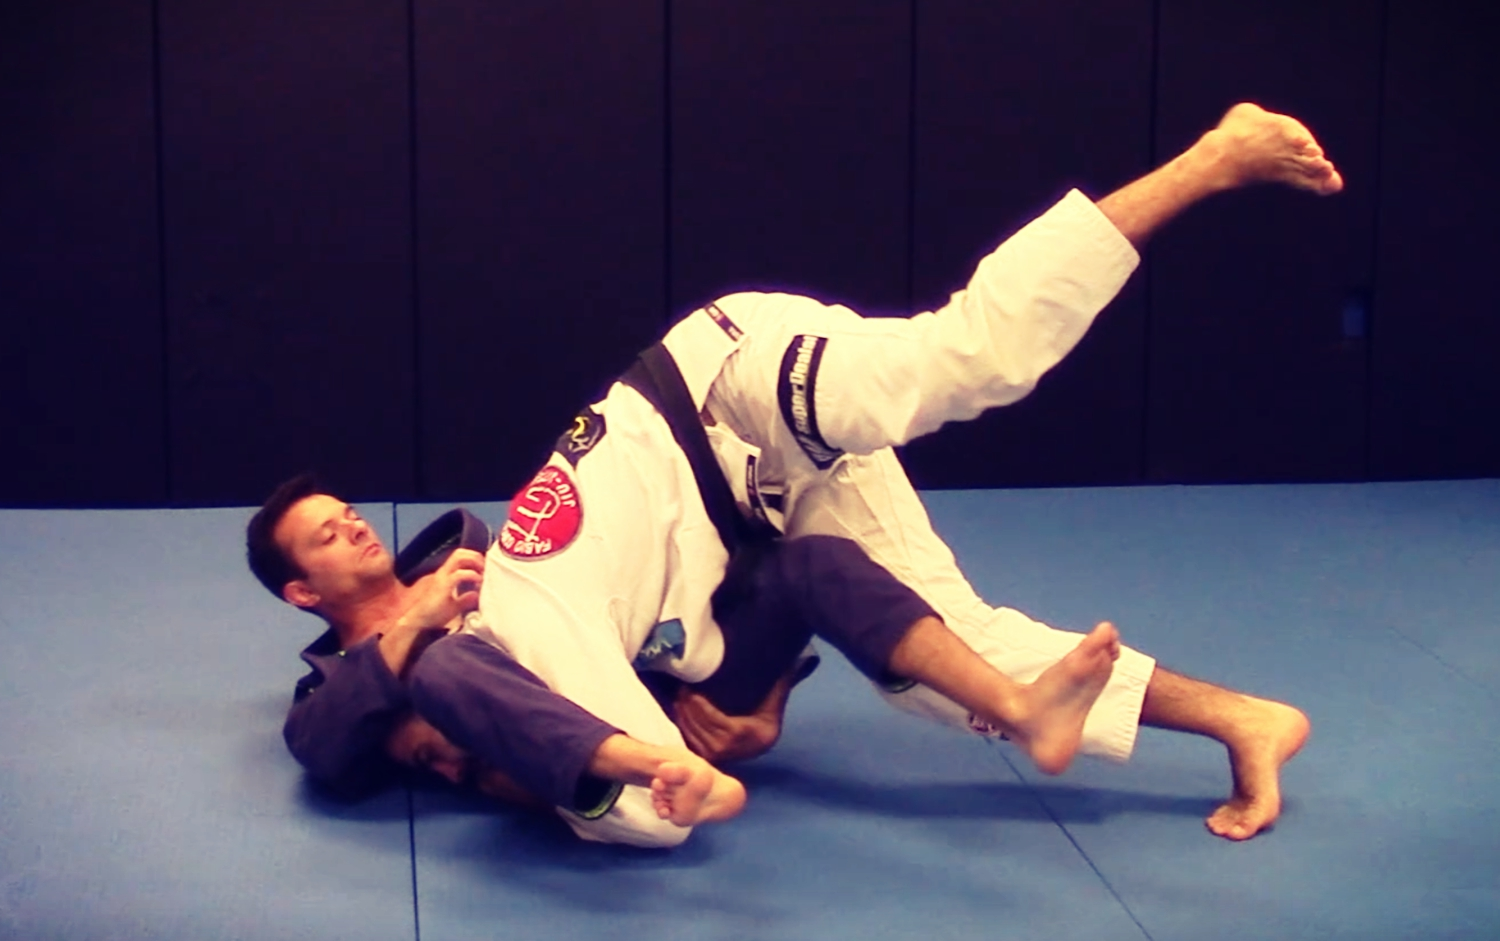 Focusing On & Mastering One Game Will Make You Improve Faster in BJJ